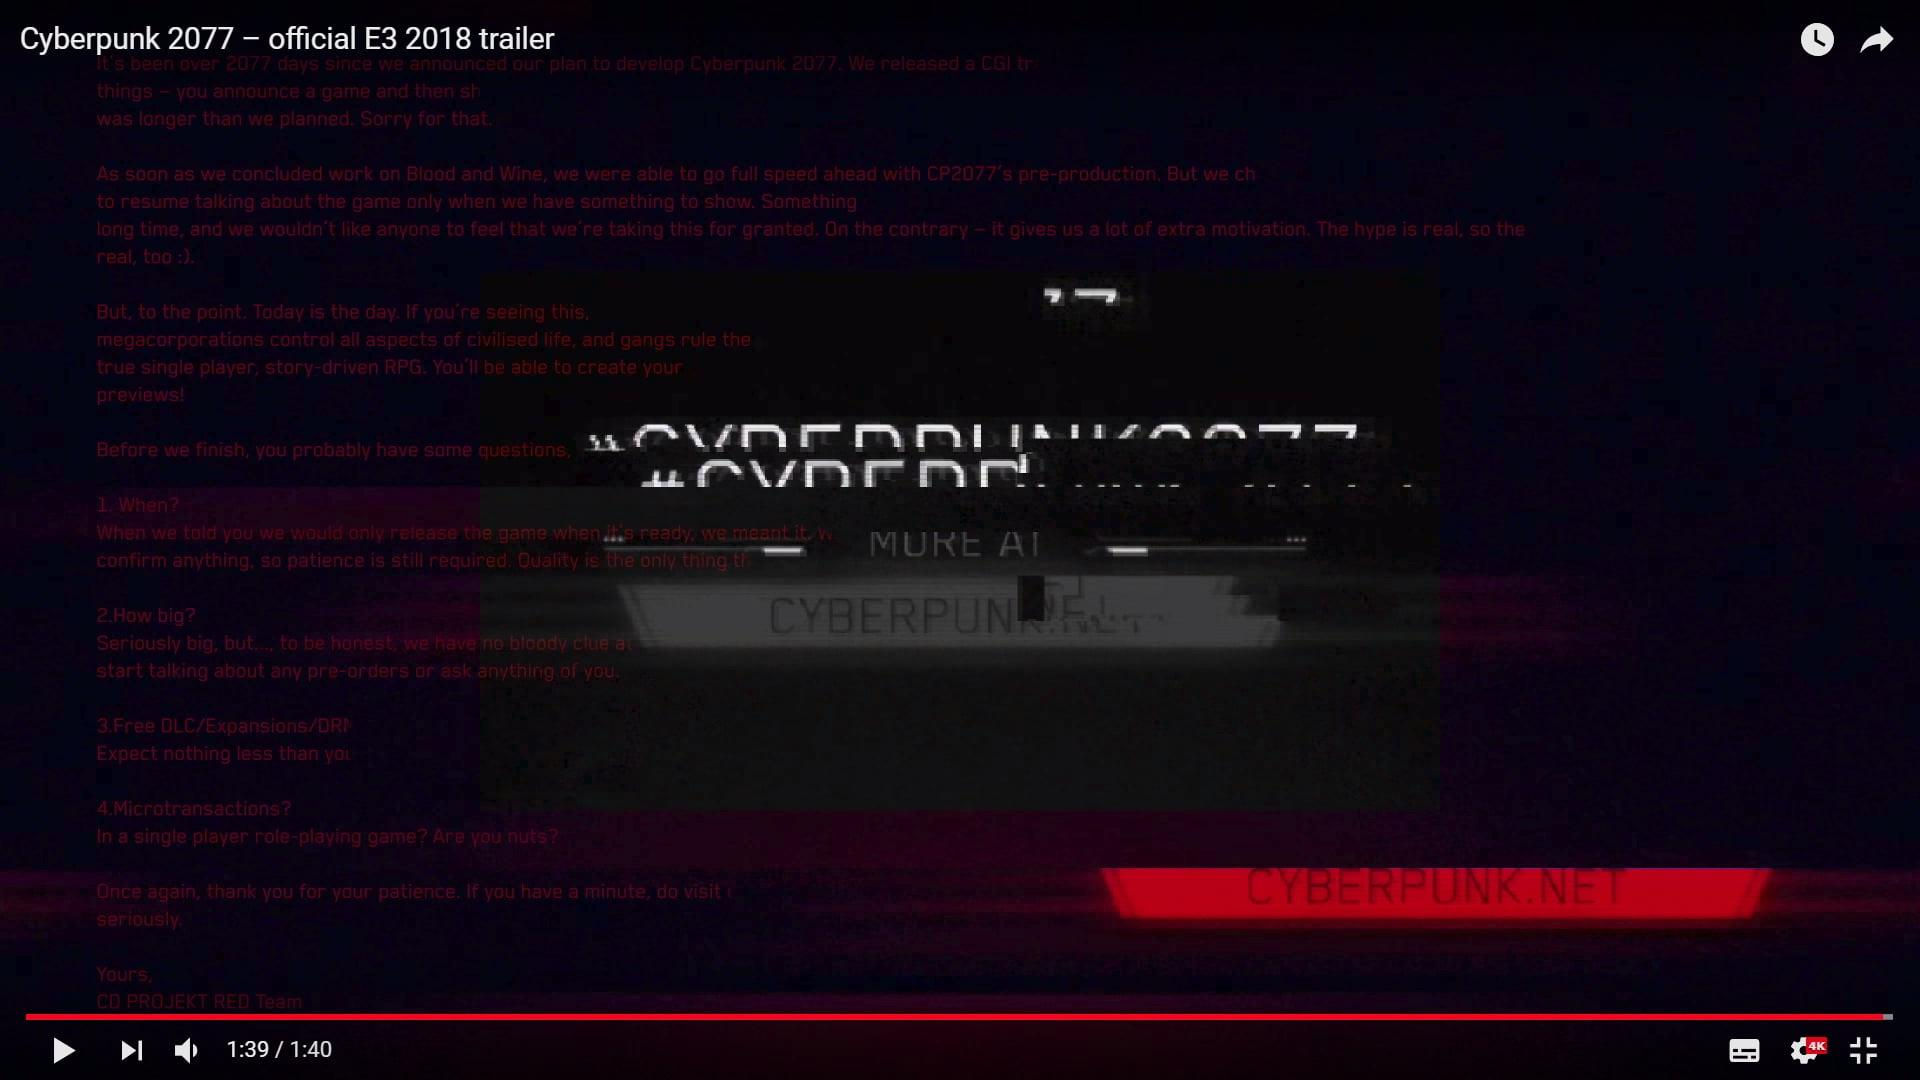 CD Projekt Red's Hidden Message In Cyberpunk 2077 E3 2018 Trailer